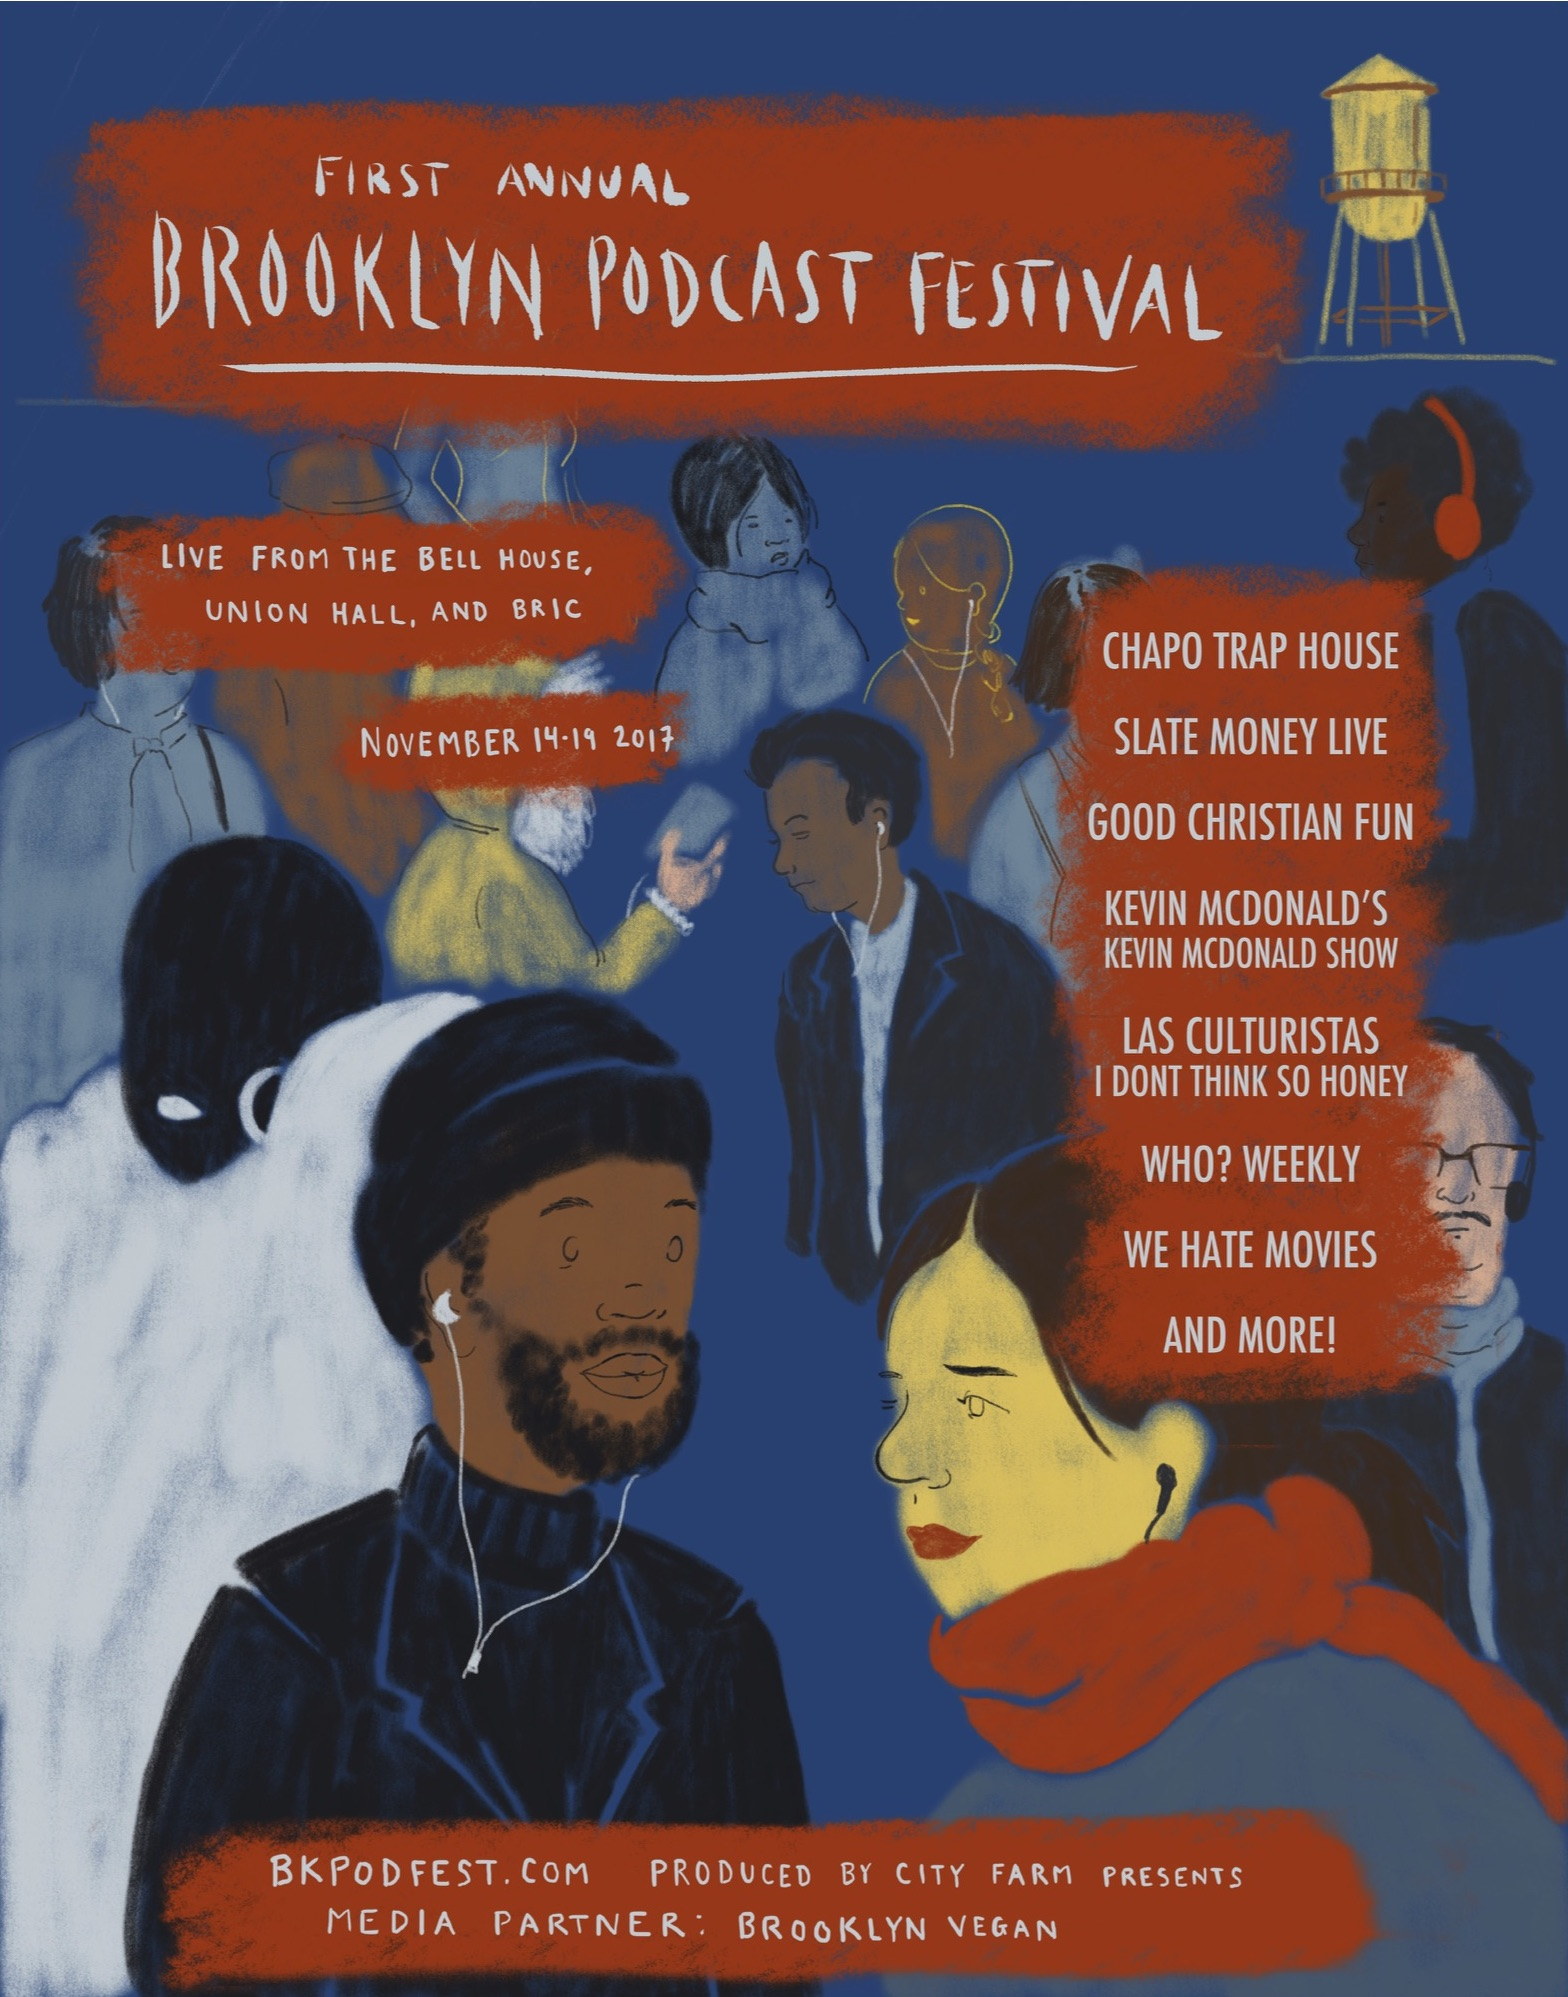 Good Orbit Shows in Brooklyn Podcast Festival